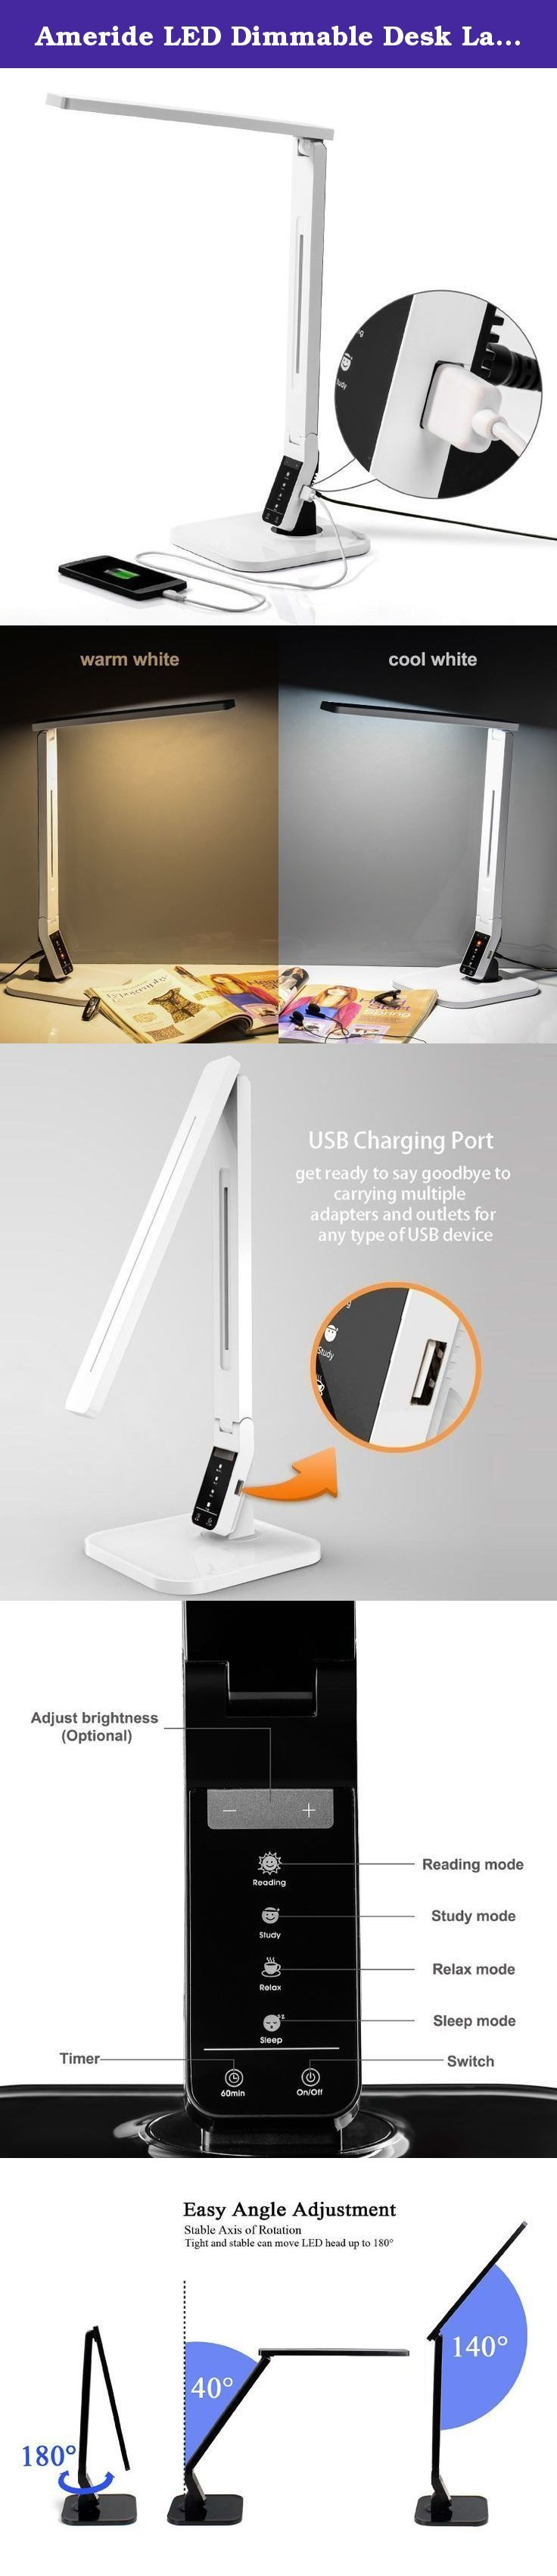 Ameride LED Dimmable Desk Lamp White, 4 Lighting Modes: Reading/Studying/Relaxation/Bedtime, 5-Level Dimmer, Touch-Sensitive Control Panel, 1-Hour Auto Timer, USB Charging Port. Ameride LED Dimmable Desk Lamp White · Adapter UL Listed , Extra long life chips up to 50,000 hours · The modern stylish desk lamp has 4 lighting modes and 5 levels of brightness, adjustable to your wish · Save energy up to 80% with much lower power bill · 1 Hour auto-off timer & USB port for charging your smart...